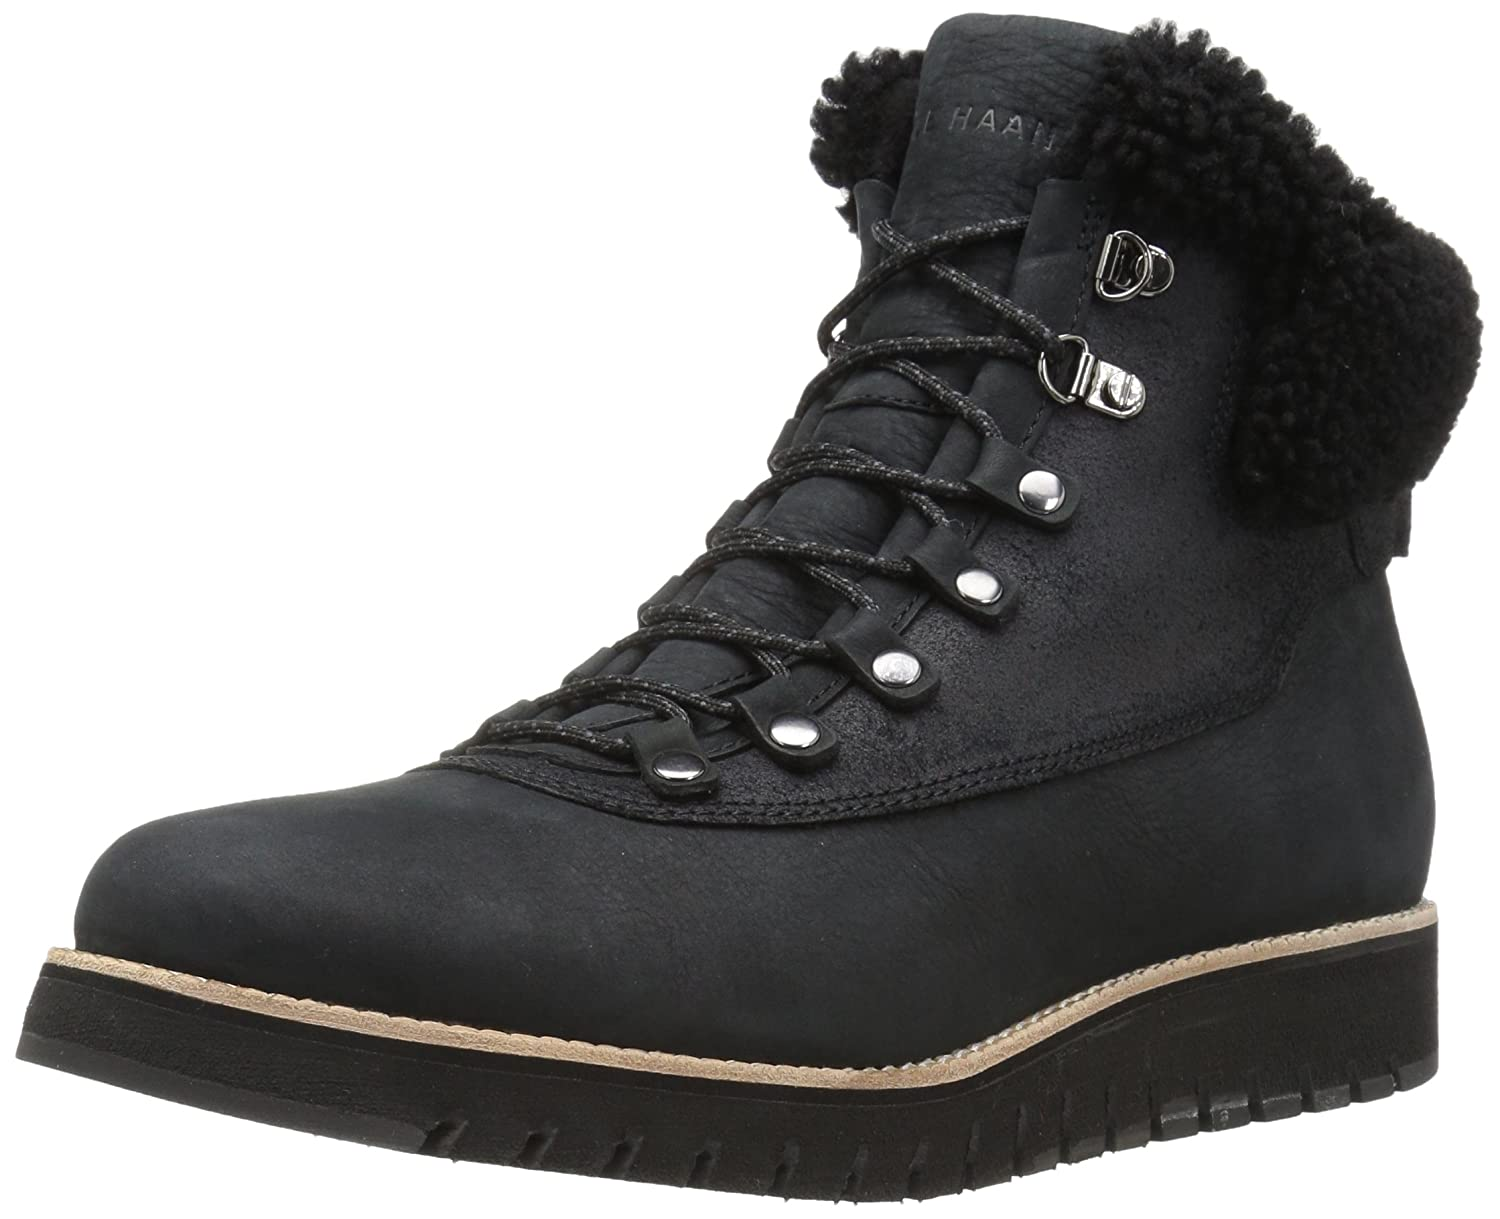 Cole Haan Women's Grandexplore Hiker WP B01N5UUL5D 8.5 B(M) US|Black Leather